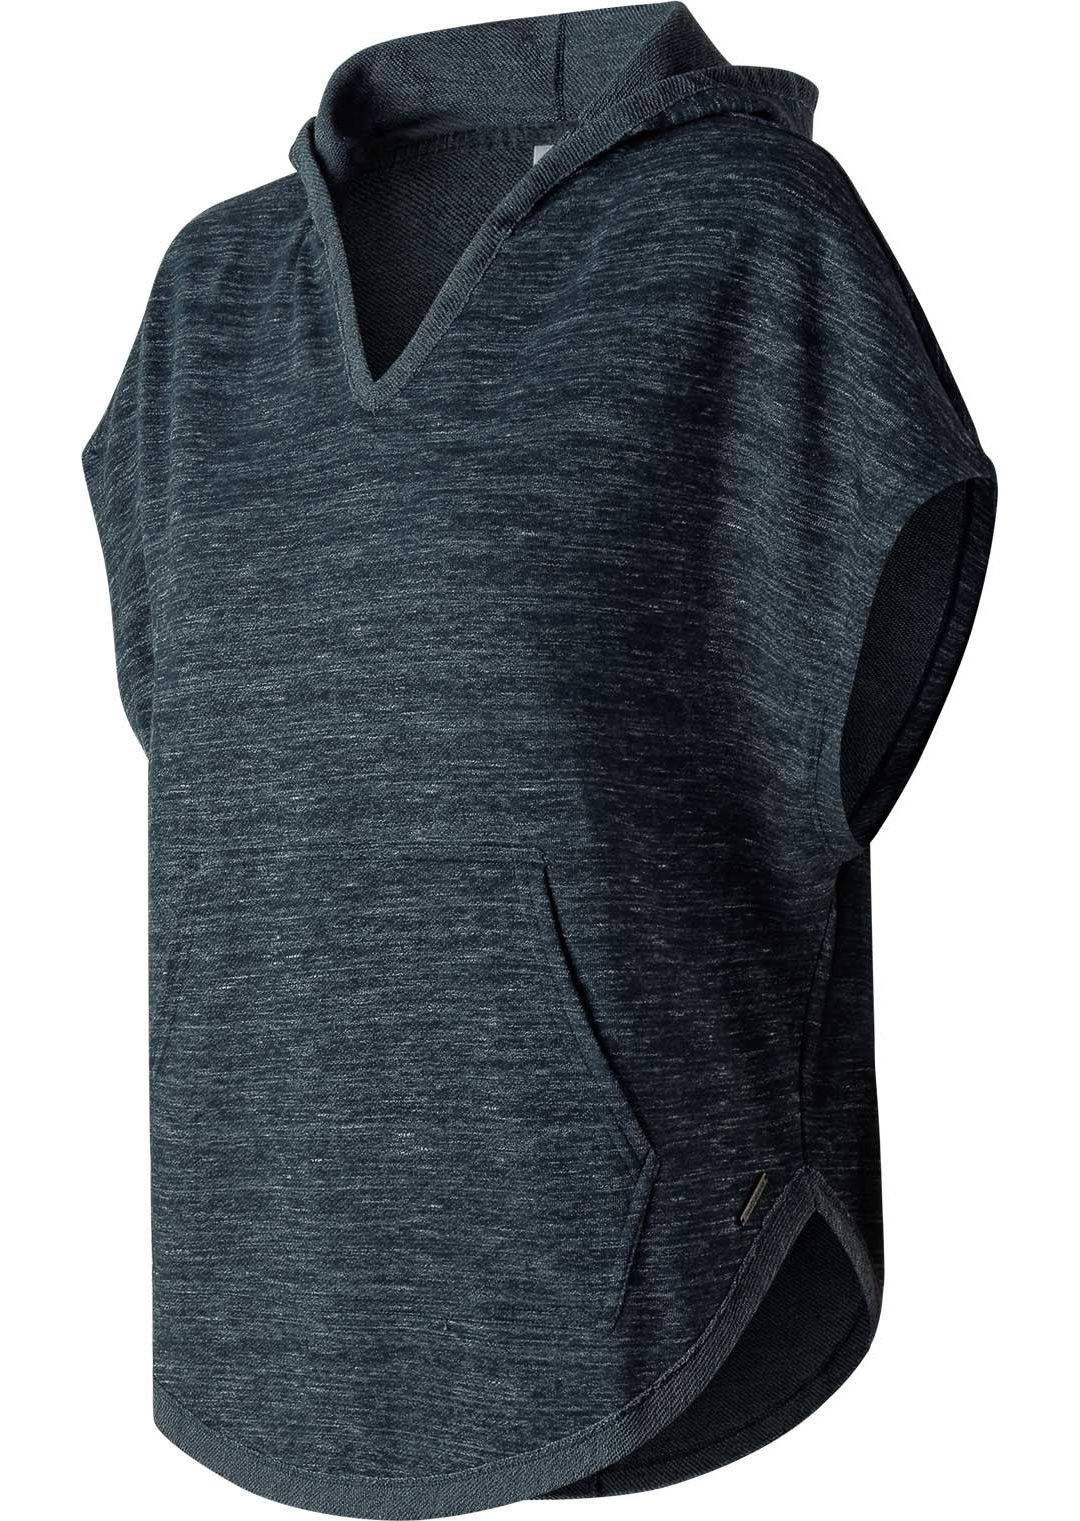 5b2a8c7358111 New Balance Women's NB Release Hooded T-Shirt